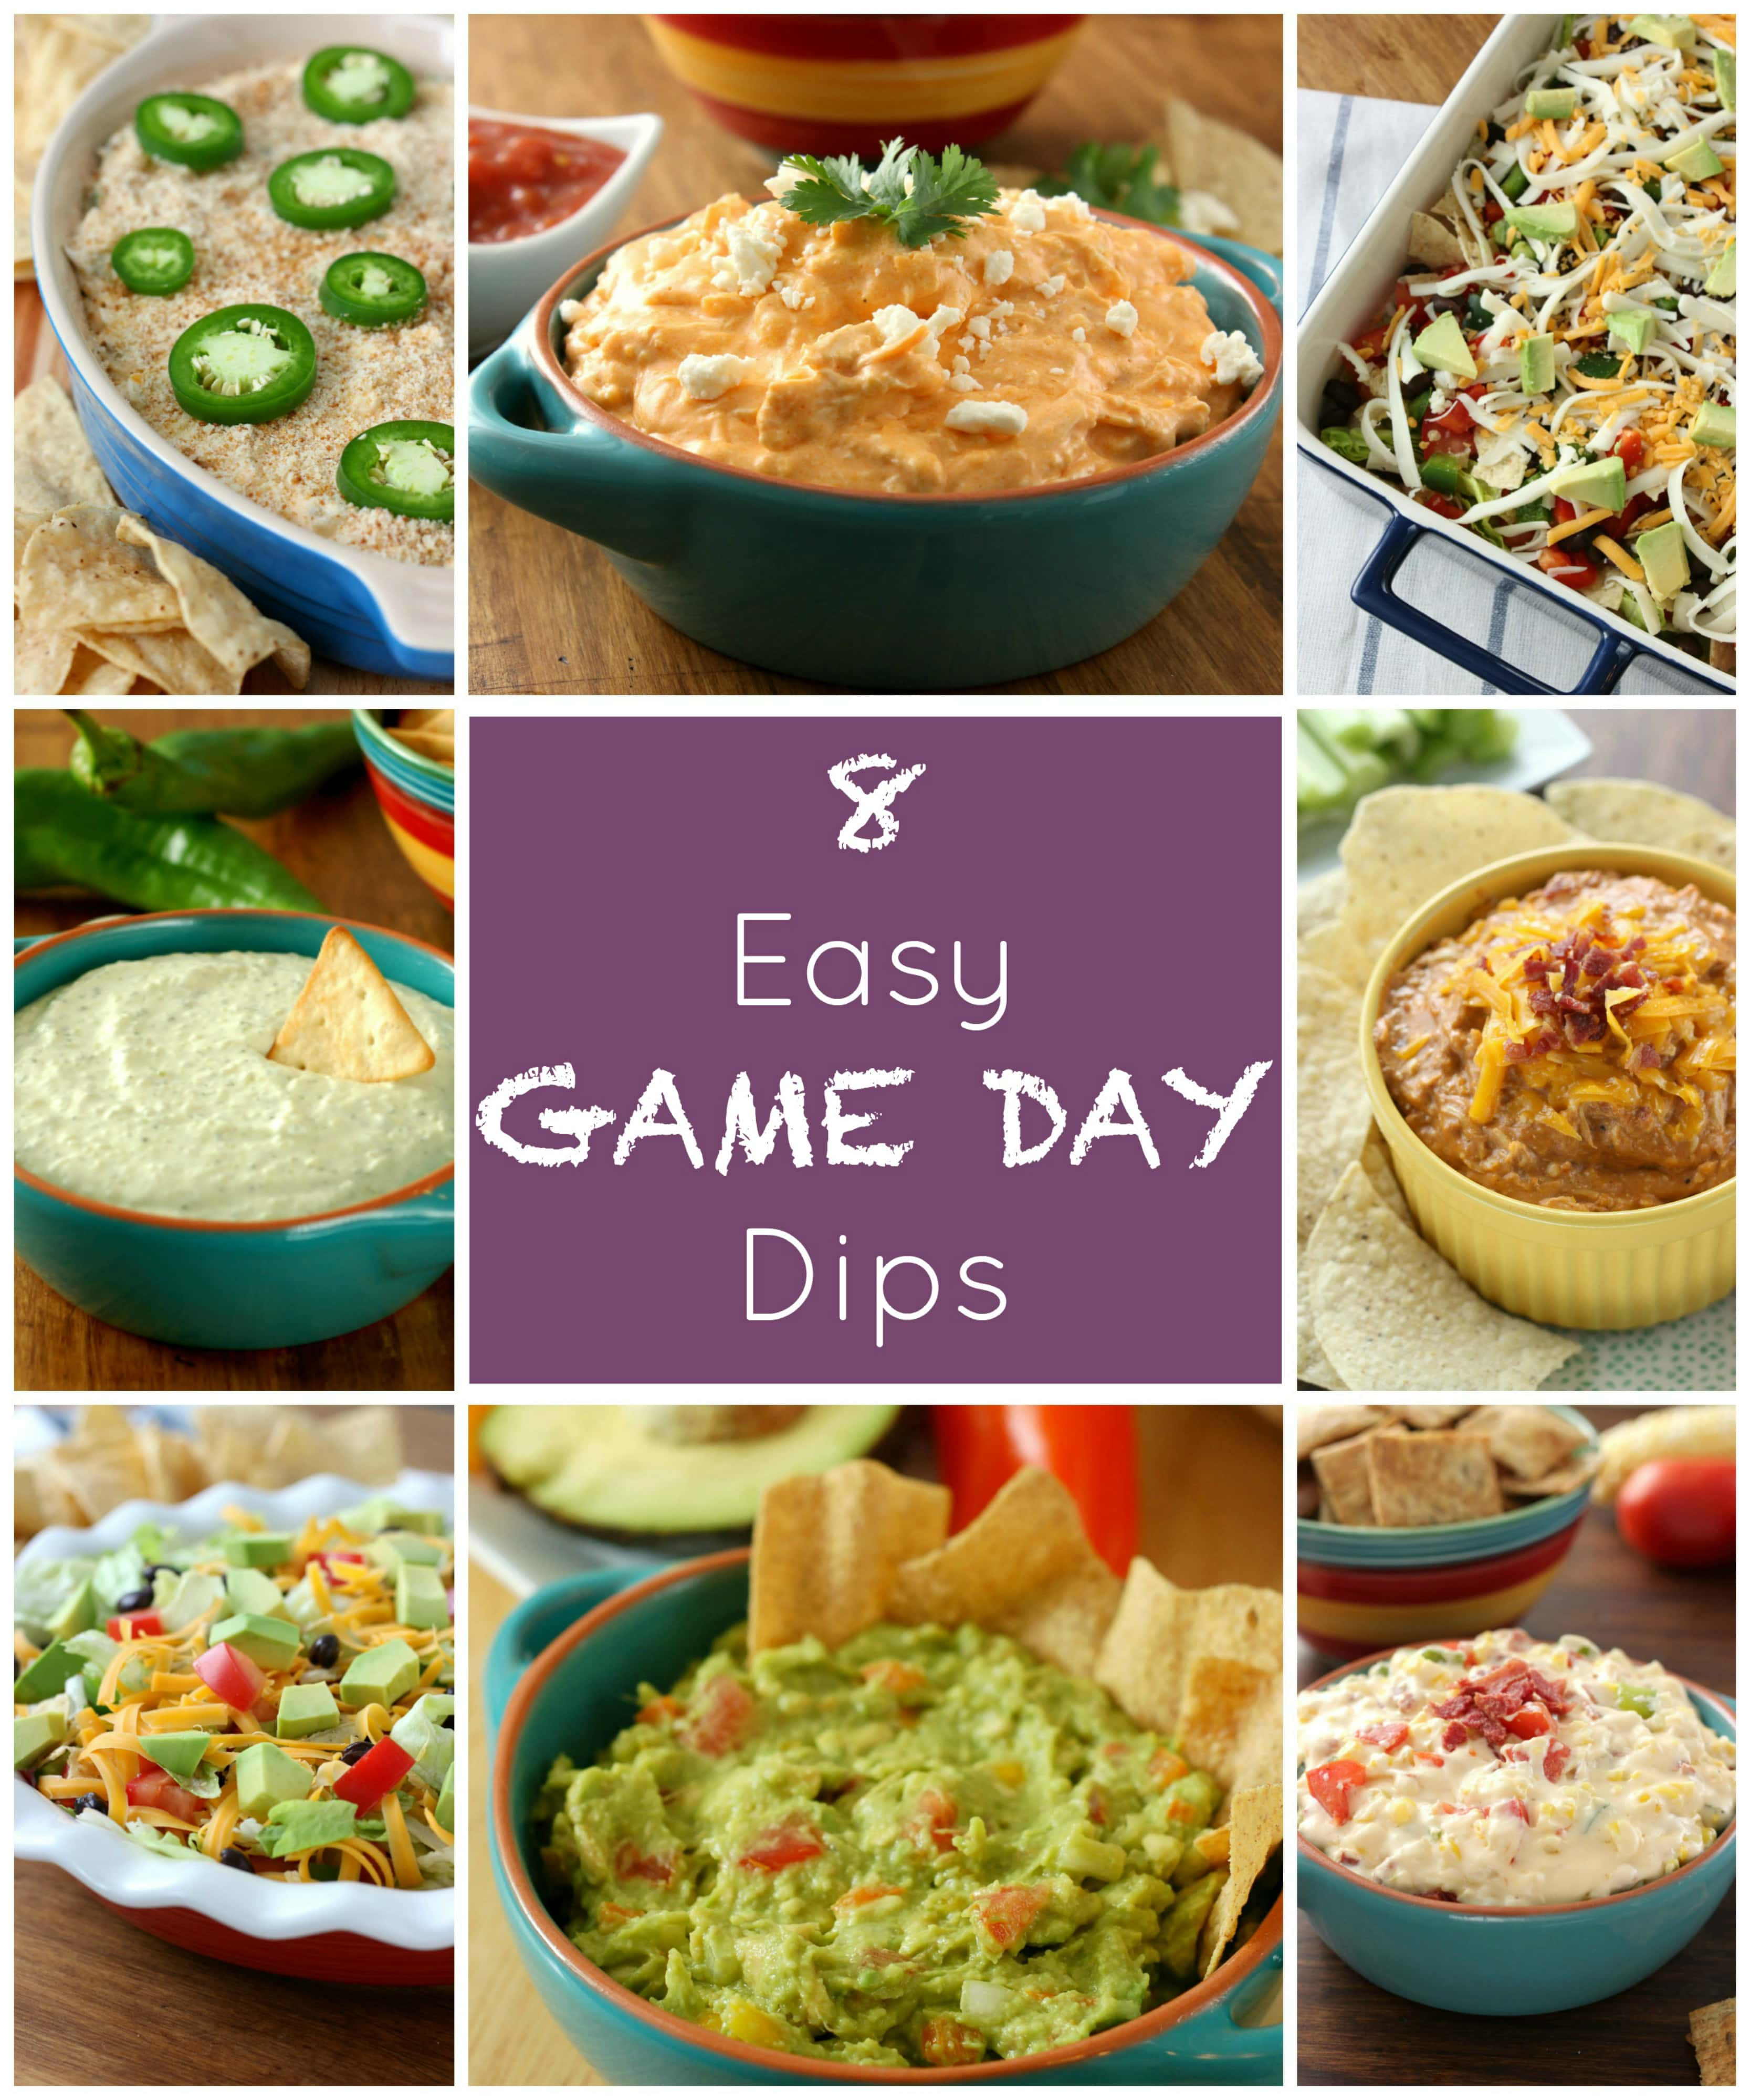 A Collection of 8 Easy Game Day Dips from A Kitchen Addiction